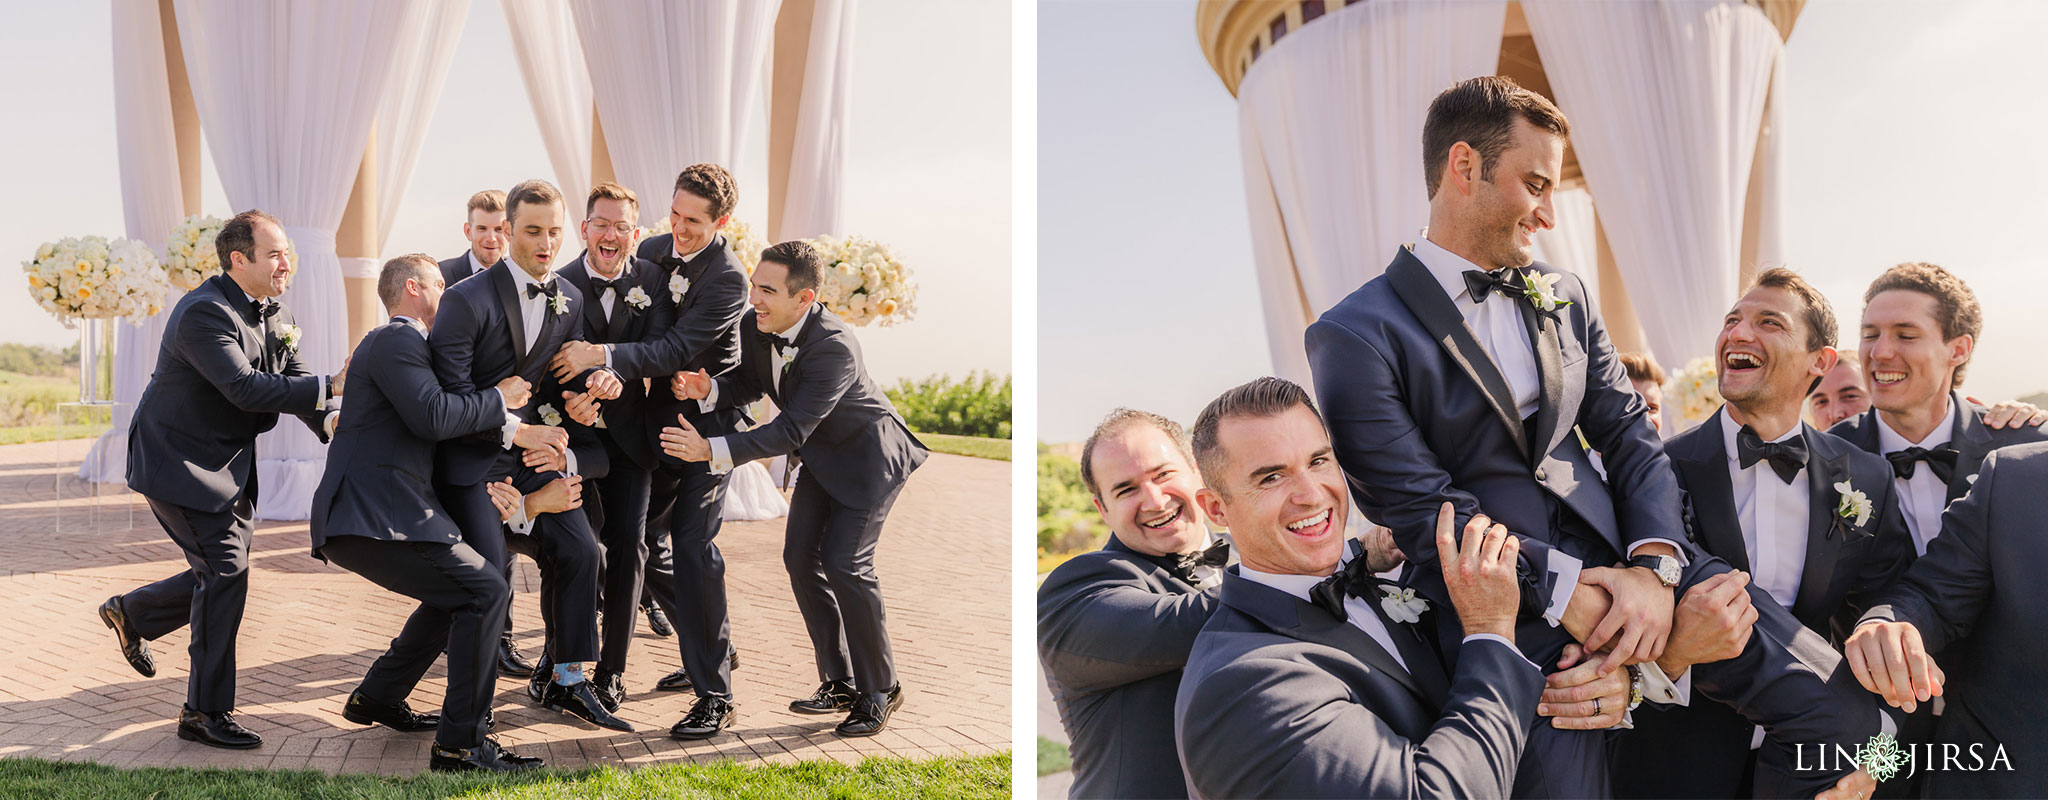 68 pelican hill orange county wedding photography